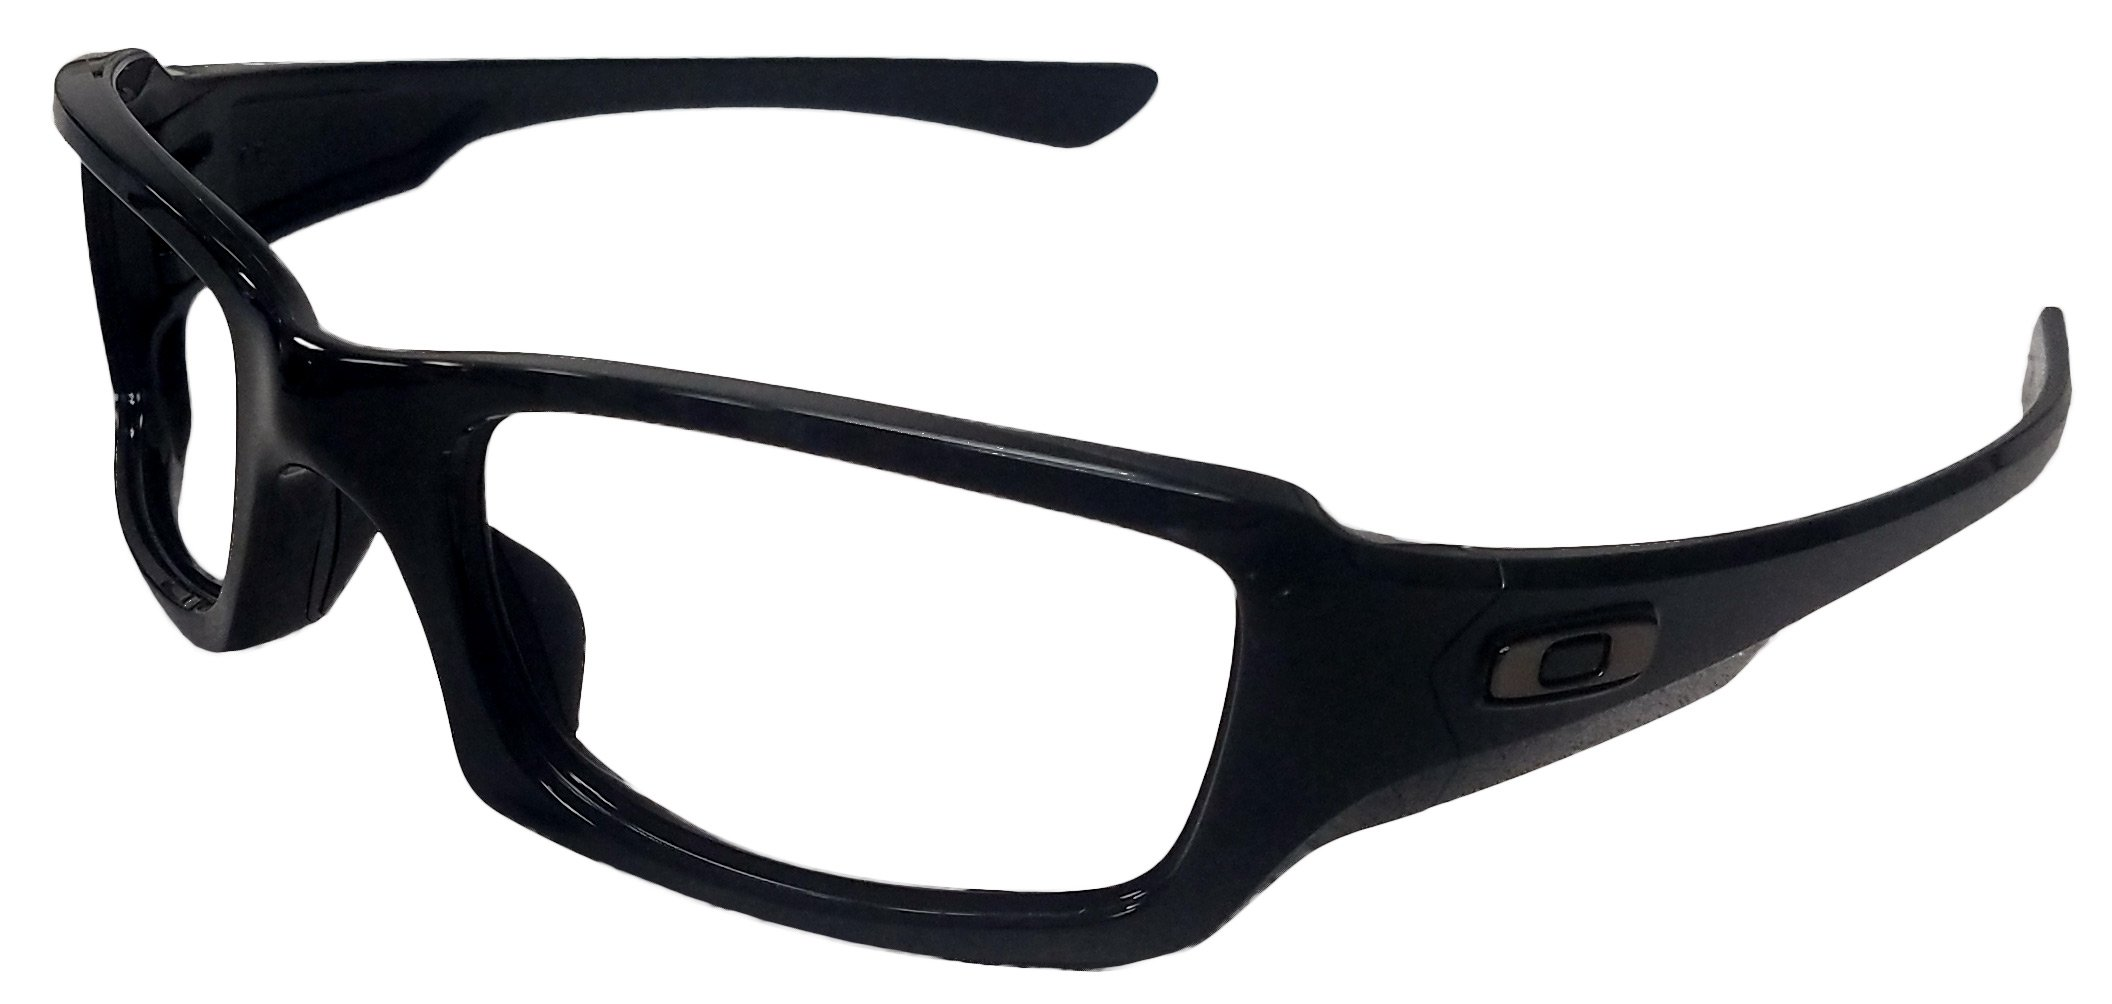 Oakley Fives Squared Radiation Glasses - Leaded Protective Eyewear